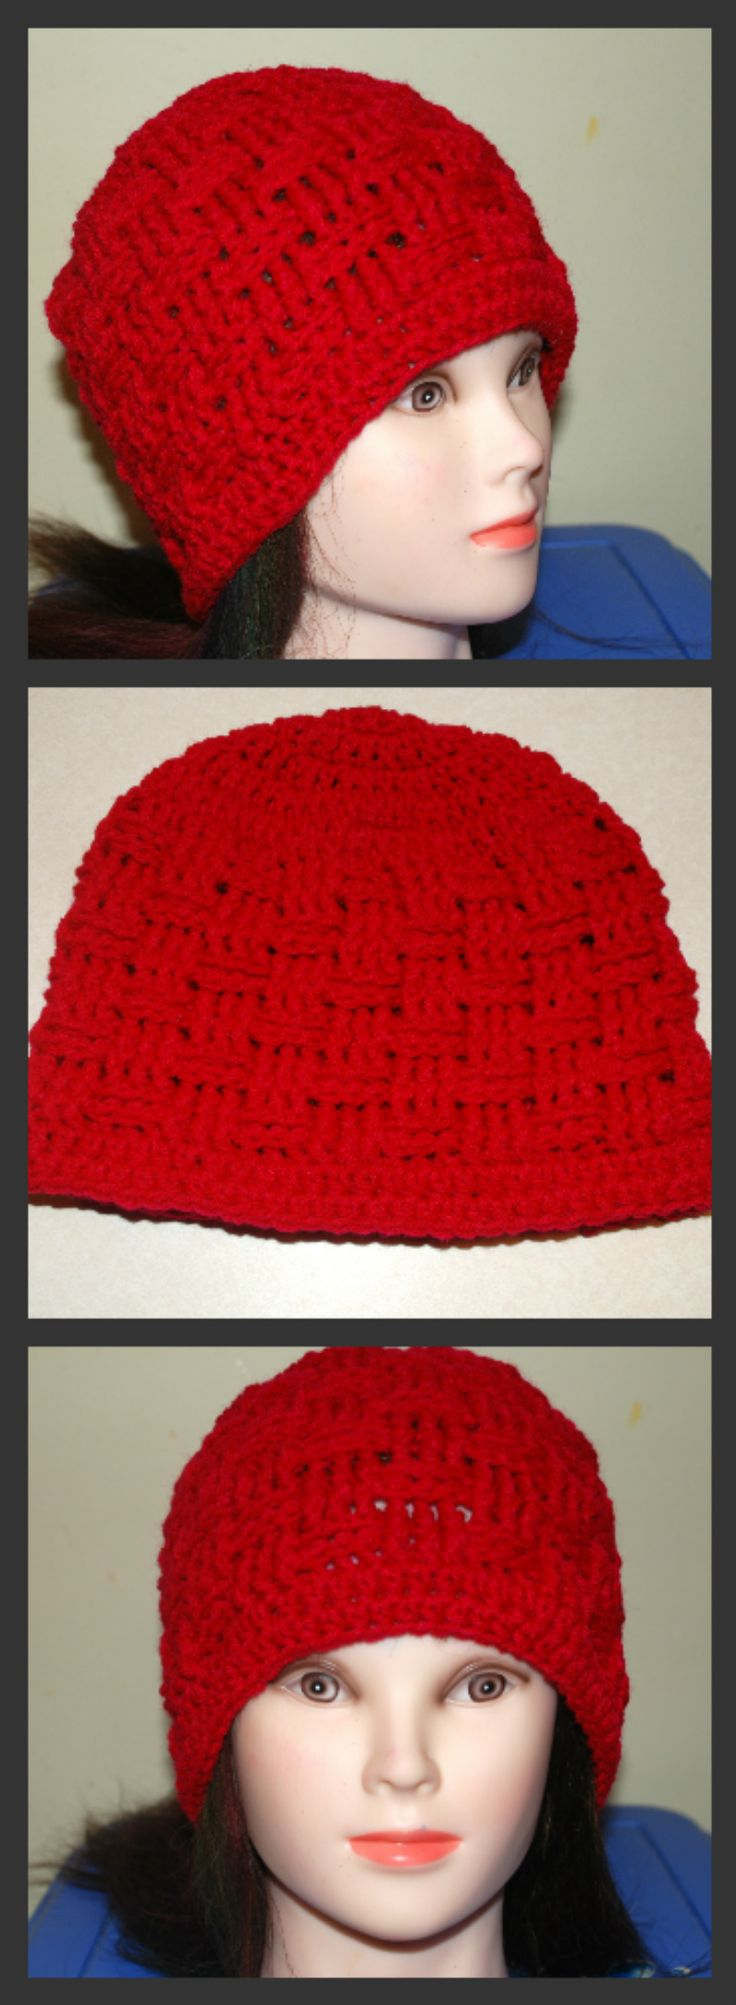 Basket Weave Hat Pattern Free : Crochet basket weave hat all sizes if you tell others